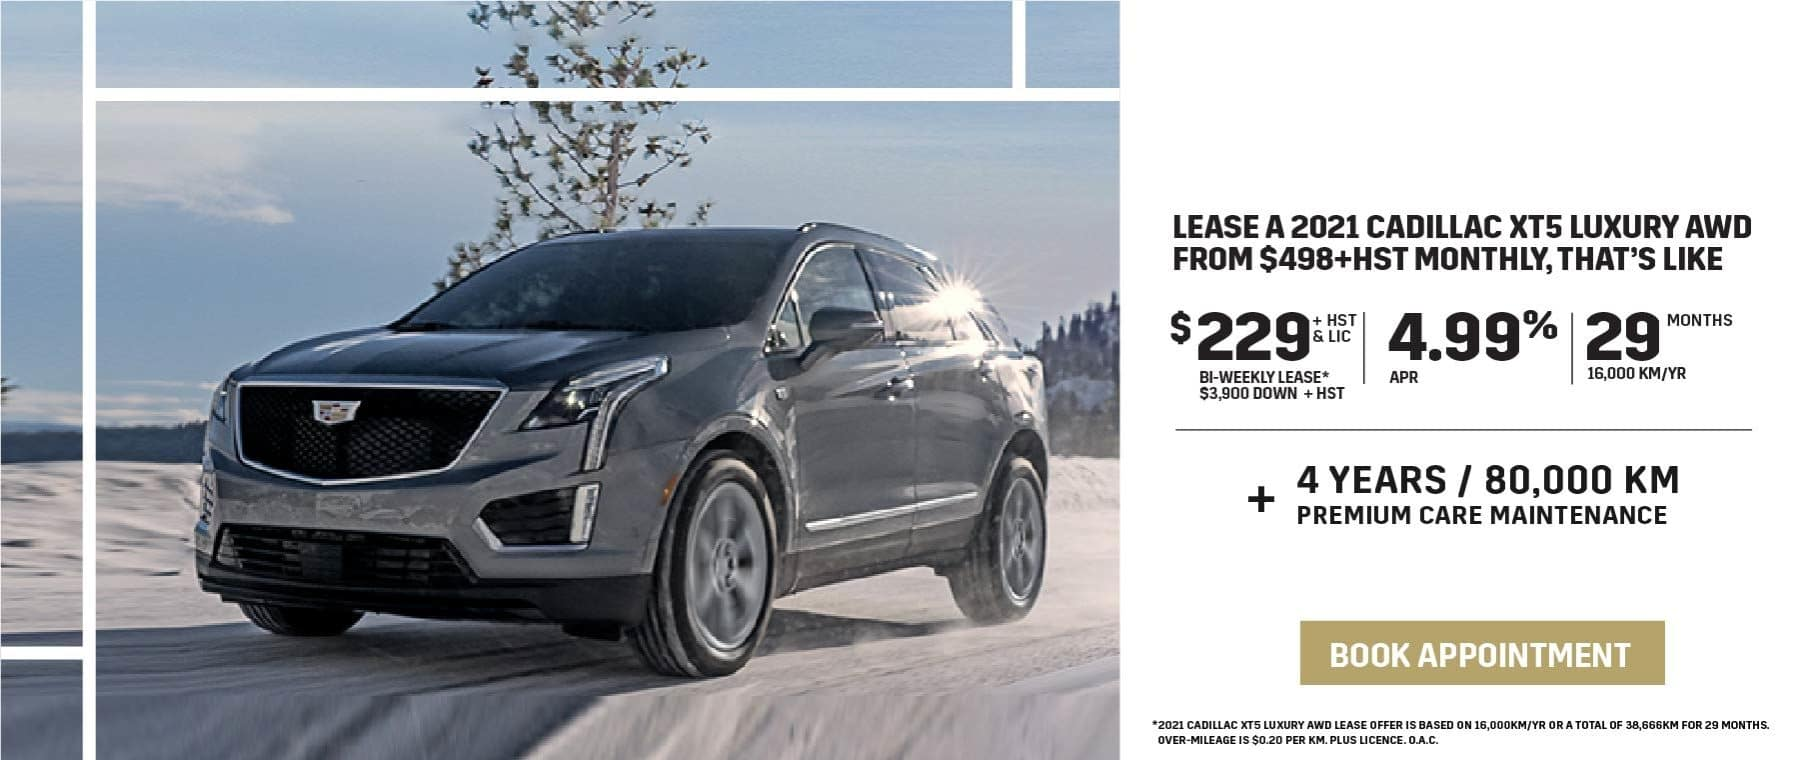 Lease a 2021 Cadillac XT5 Luxury AWD from $498+HST Monthly, that's like $229 Bi-Weekly for 29 Months